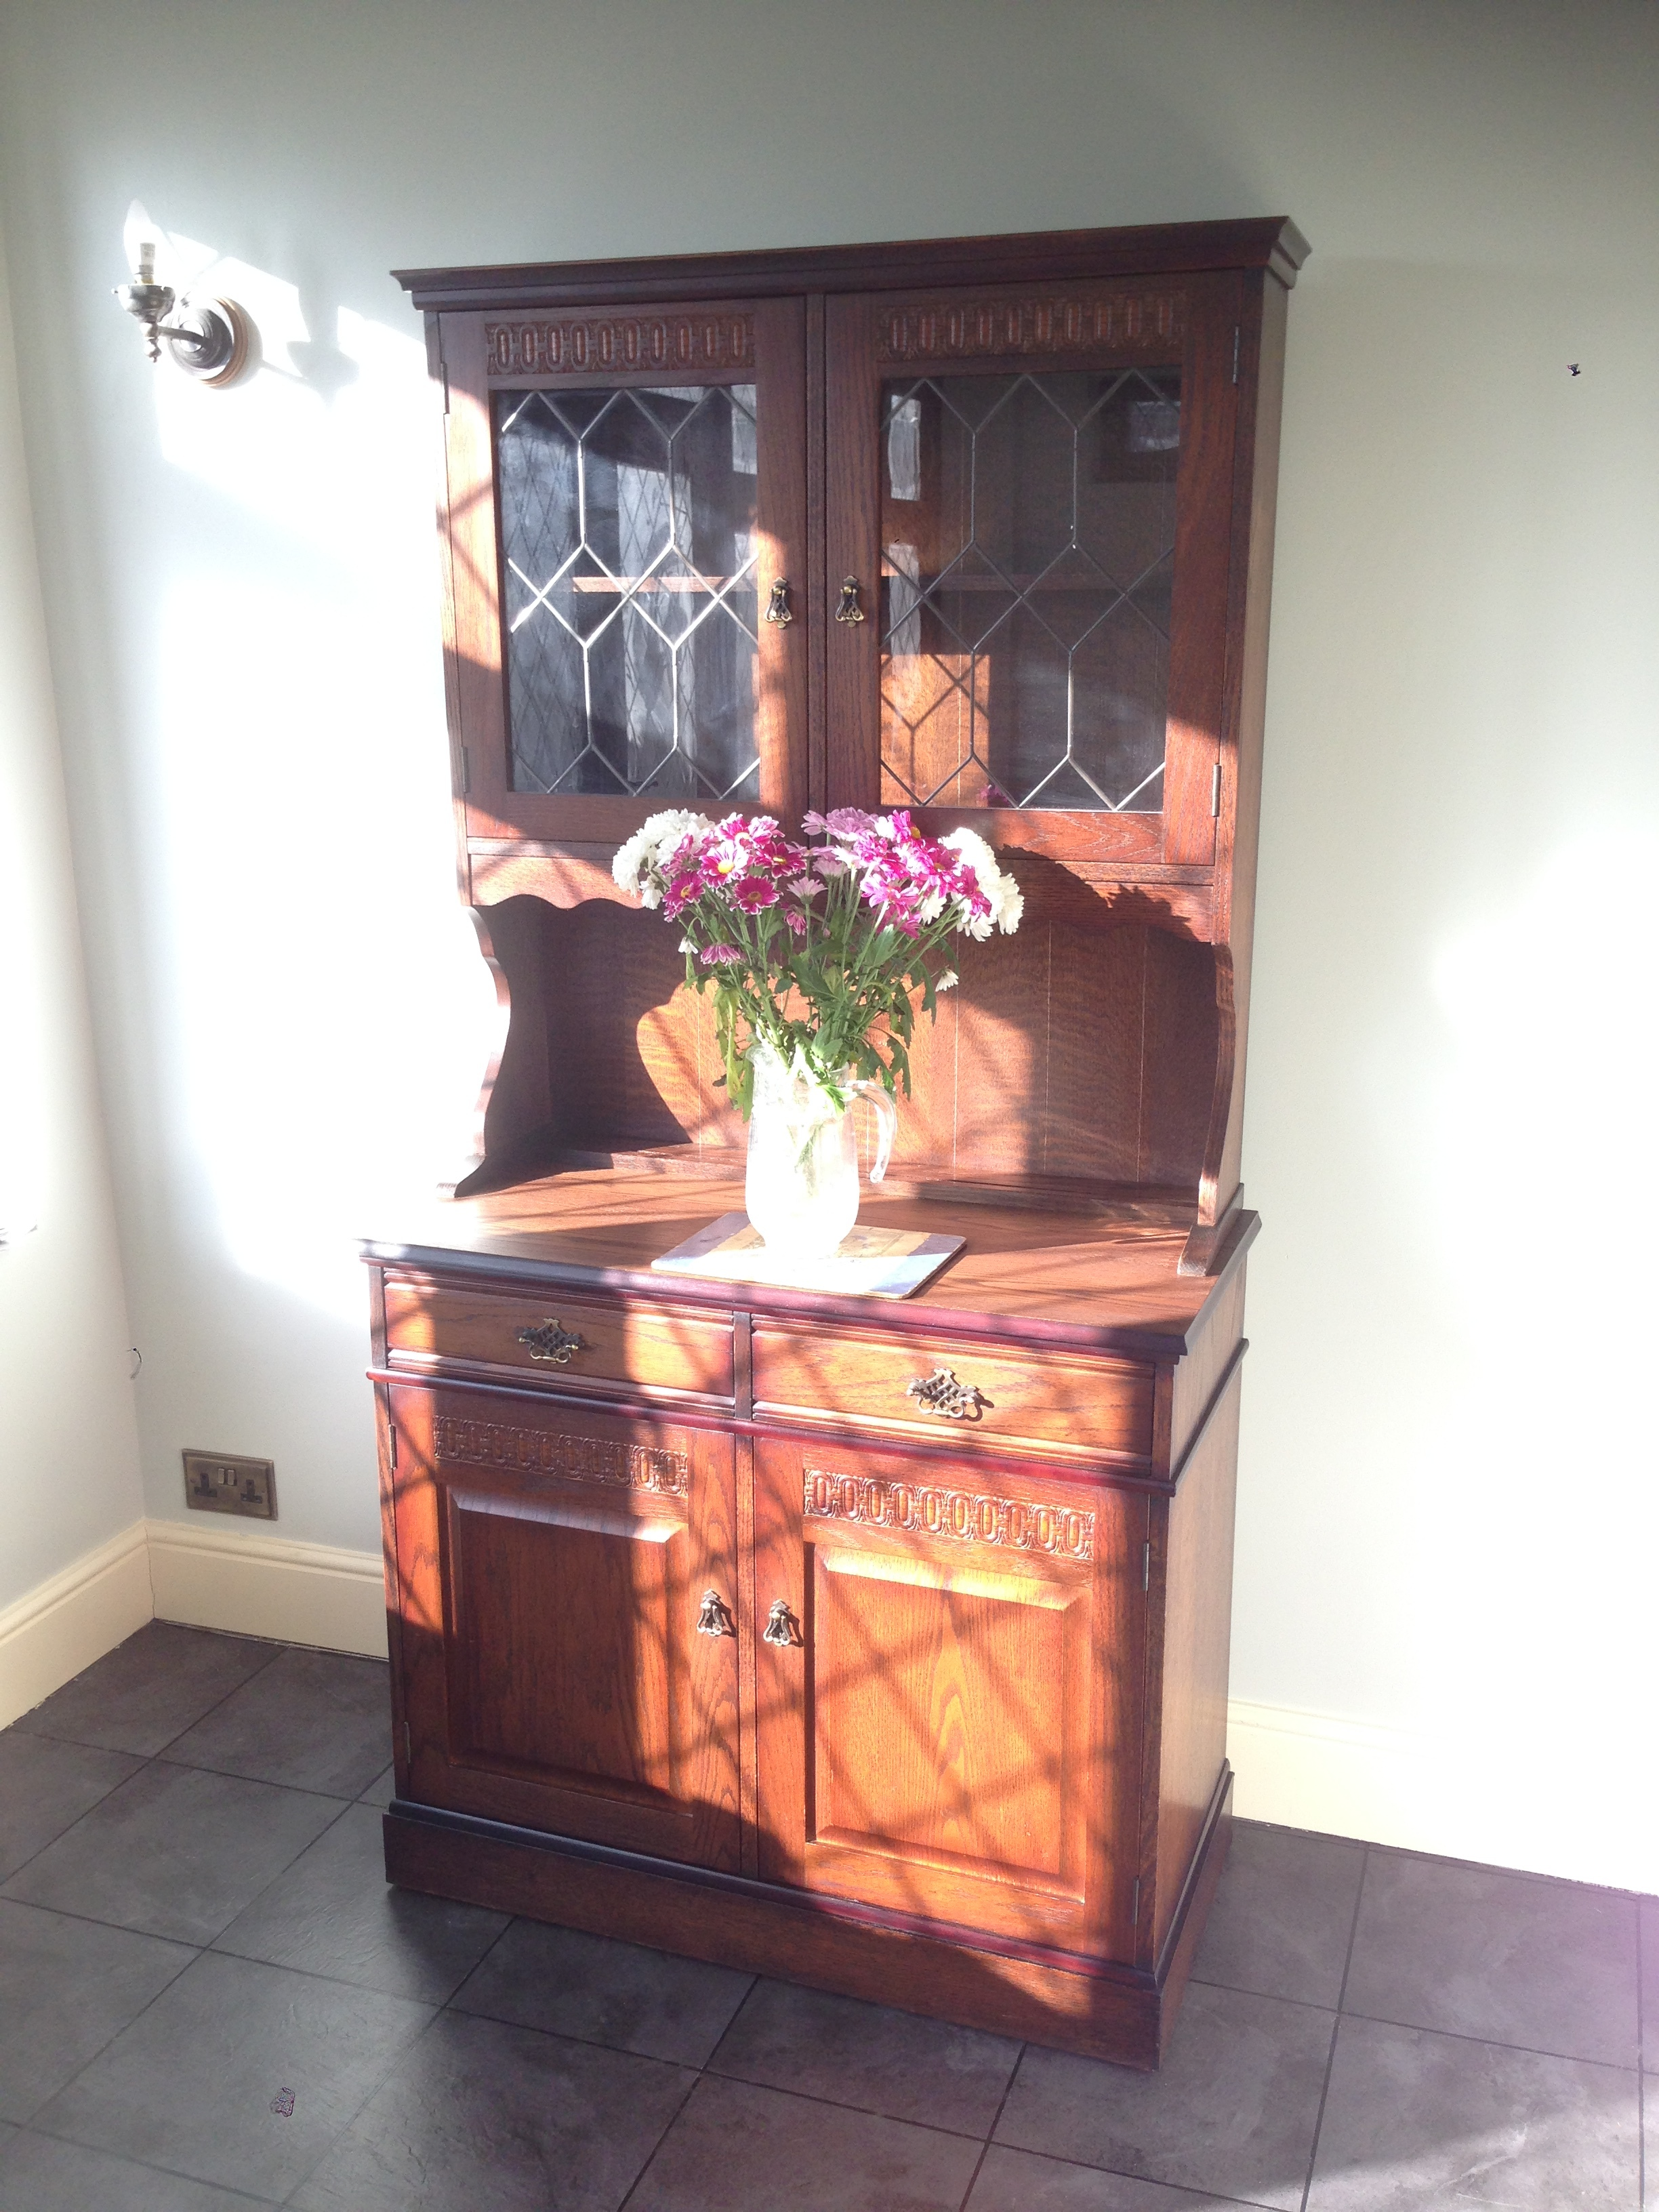 The Oak Traditional Dresser was presented with a heavily marked and stained top surface, which needed to be stripped back and re polished to match the original colour. There were several knocks and bruised edges on the corners and bottom of the piece that needed attention and re polishing.